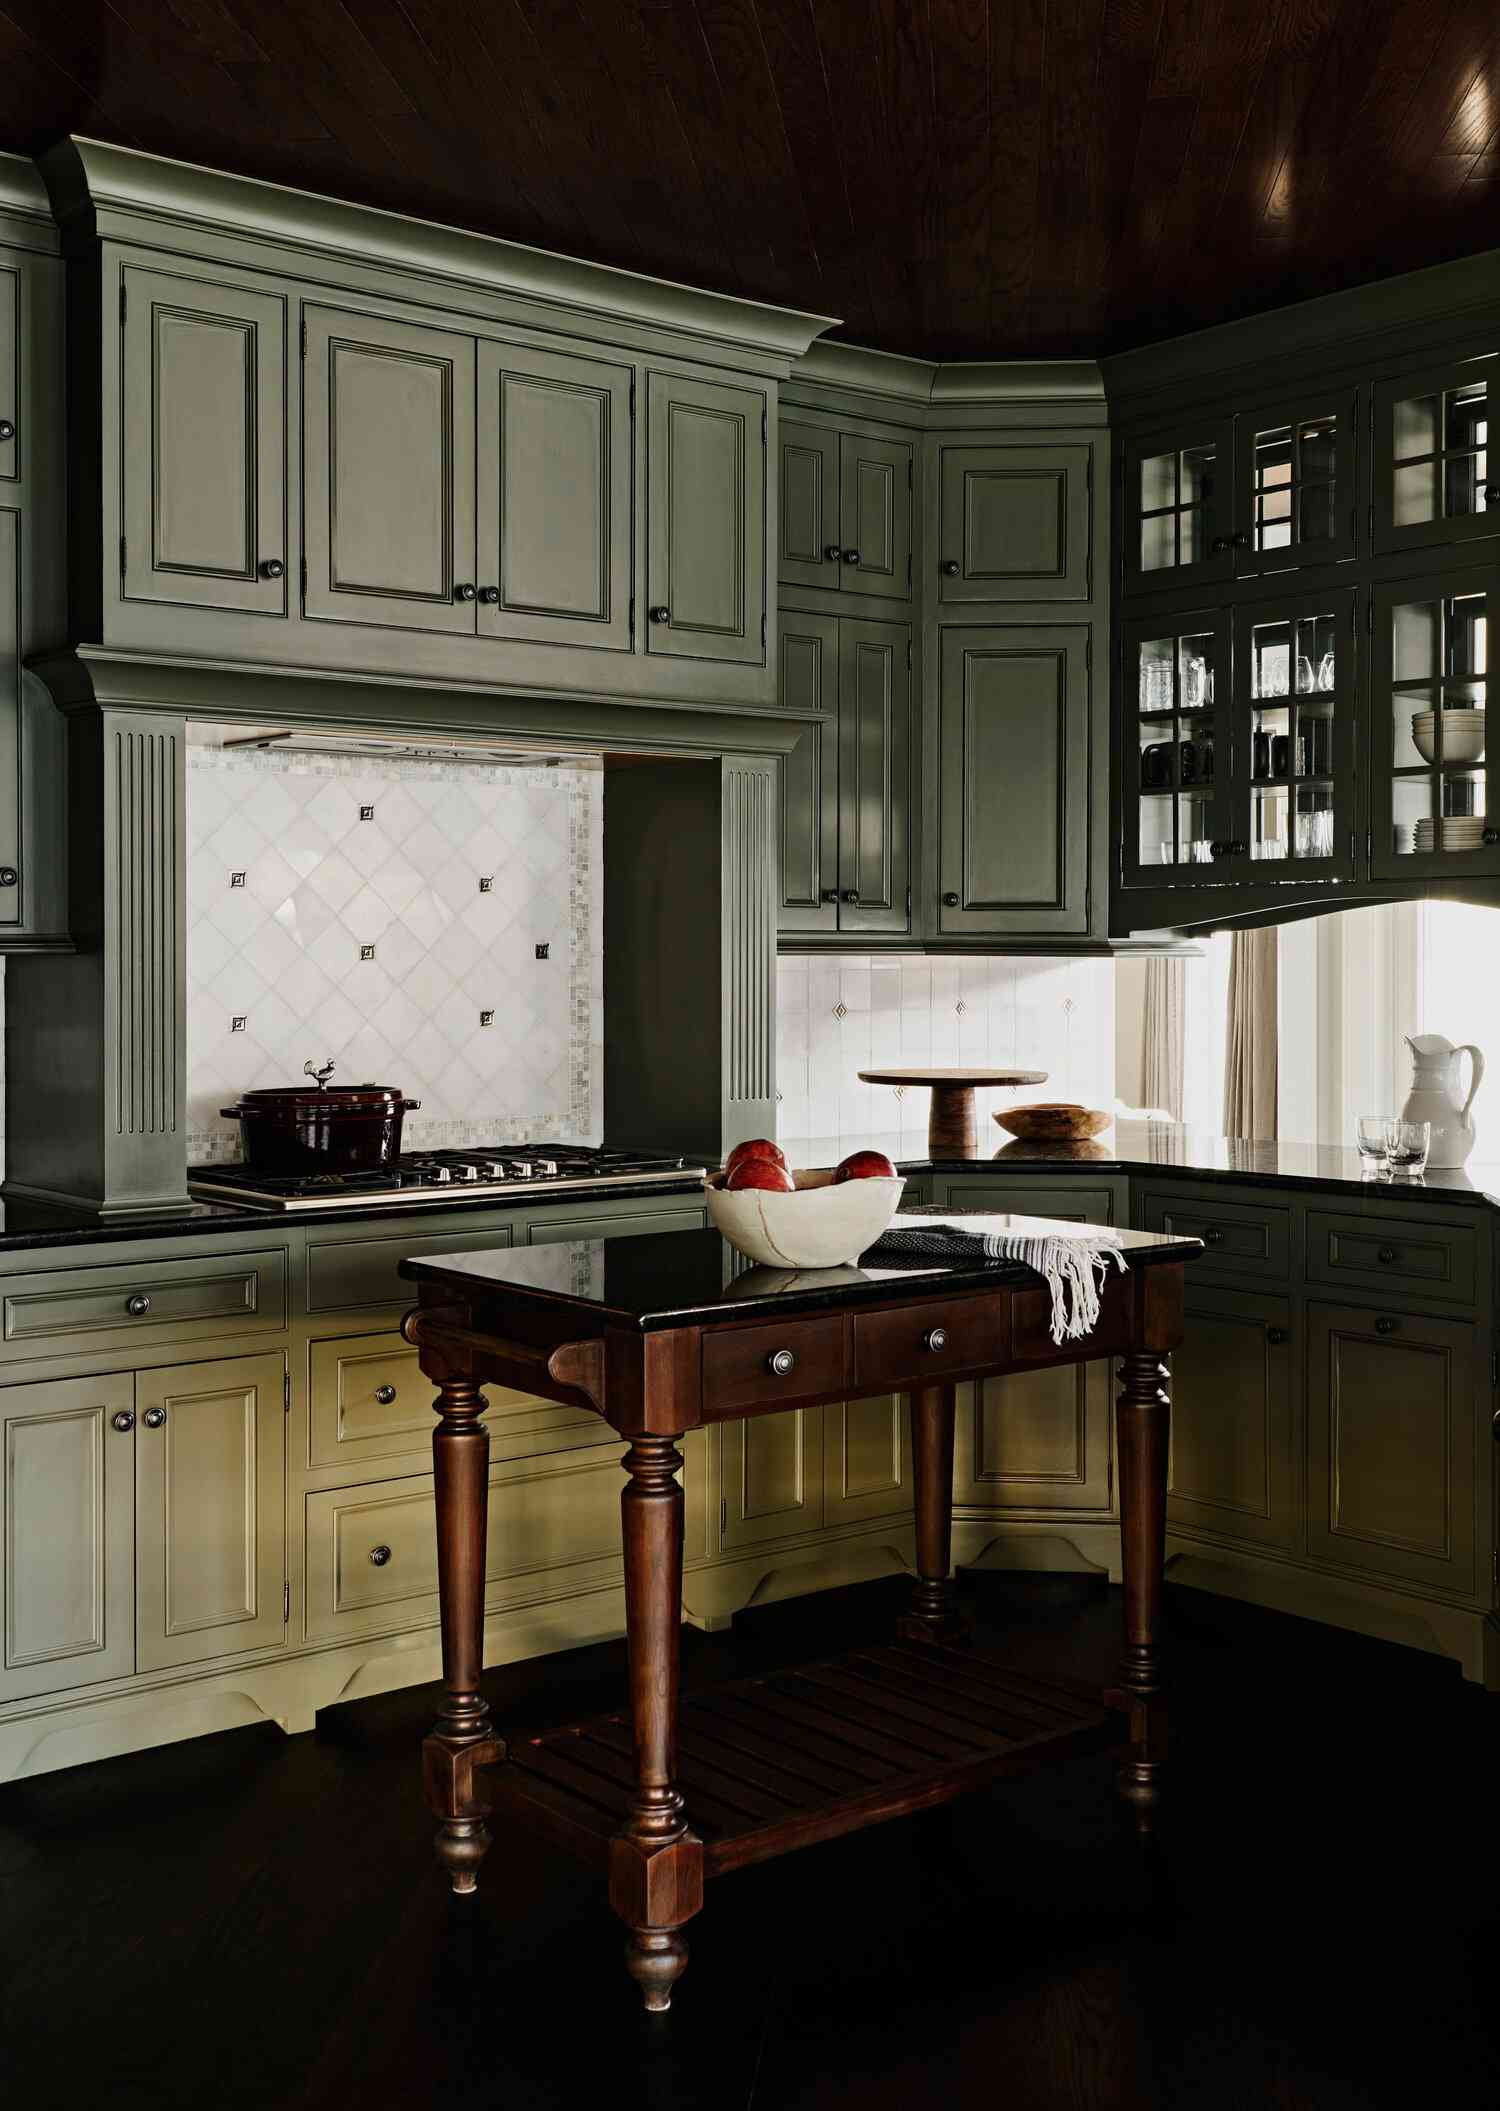 A kitchen with mint green cabinets and a white tiled backsplash, which has been framed by smaller gray tiles